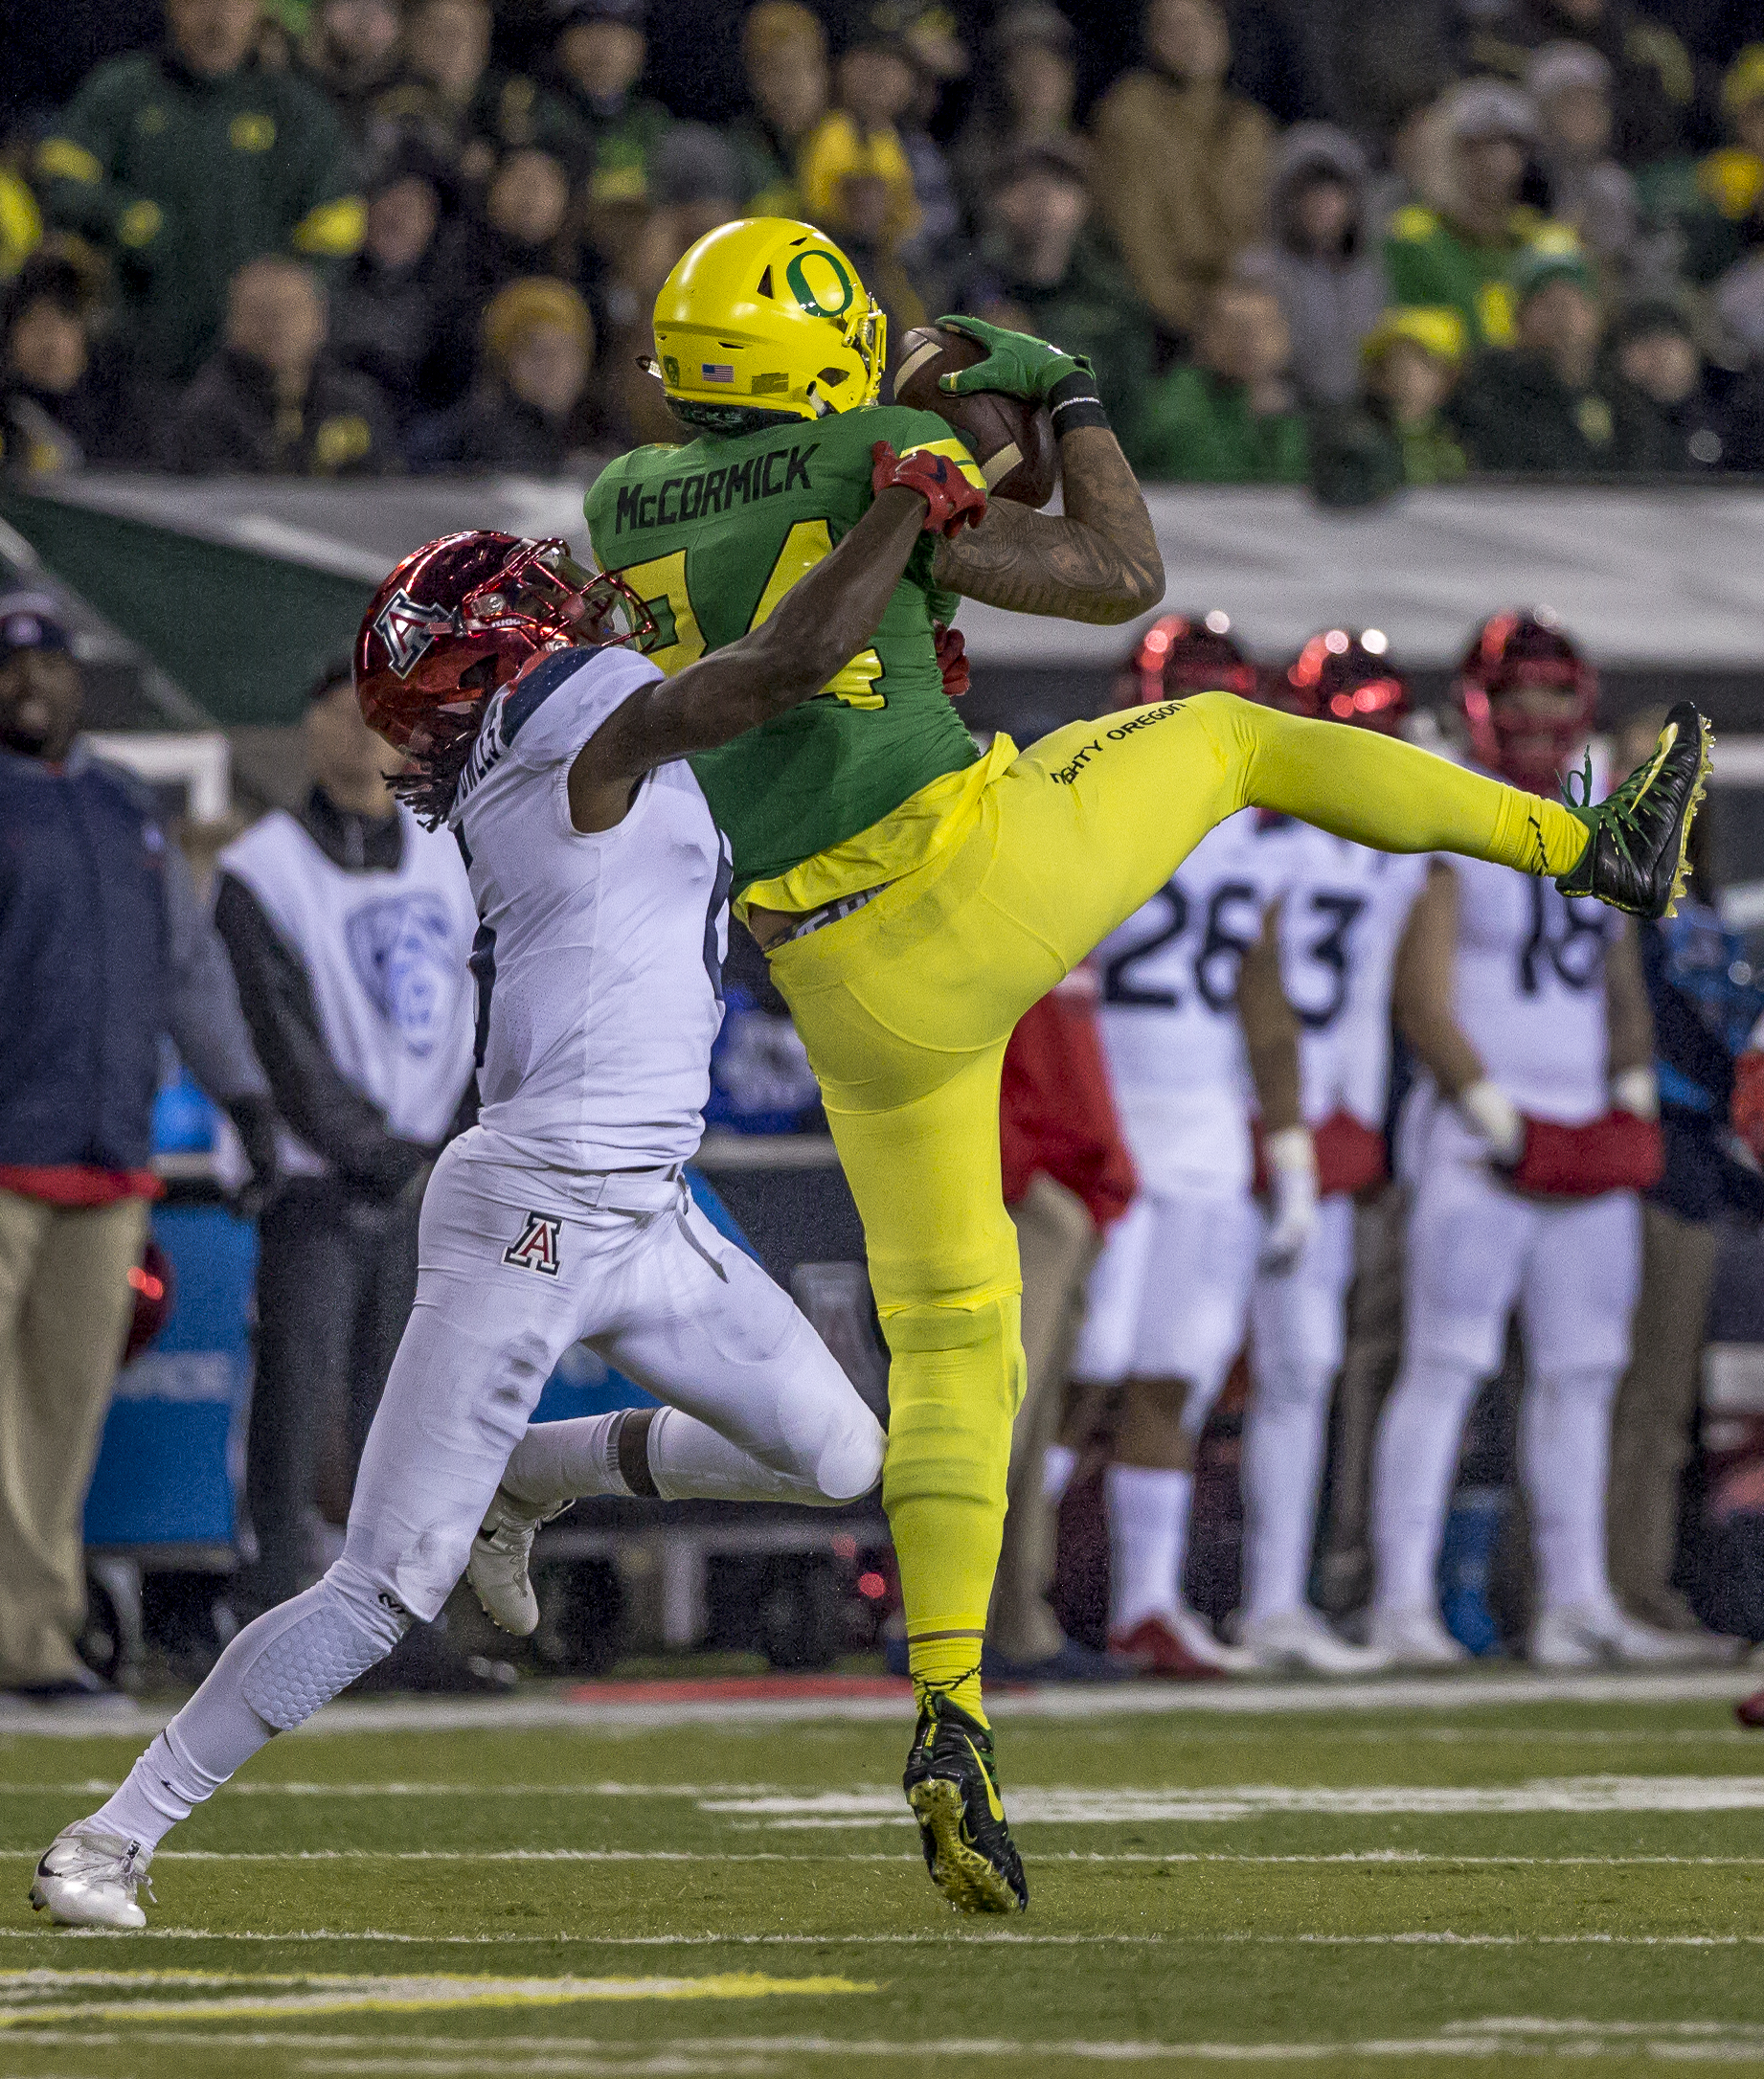 Oregon tight end Cam McCormick (#84) leaps to catch a pass from quarterback Justin Herbert (#10). The Oregon Ducks defeated the Arizona Wildcats 48 to 28 during a chilly evening game at Autzen Stadium on November 18, 2017. Photo by Ben Lonergan, Oregon News Lab